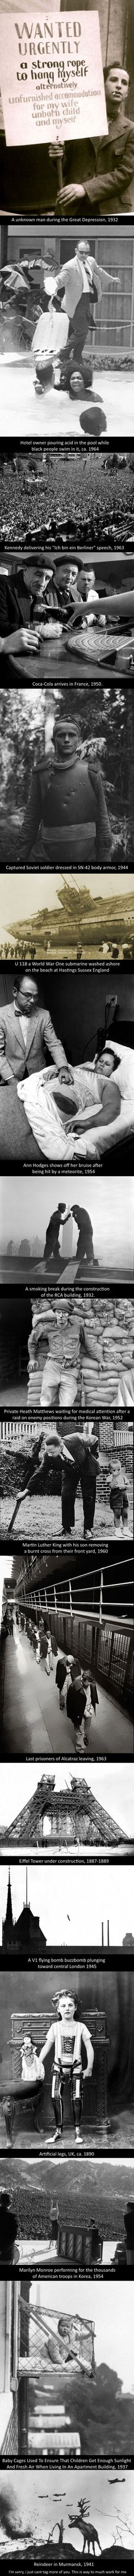 Old snaps you have to see. Part 7 http://ibeebz.com